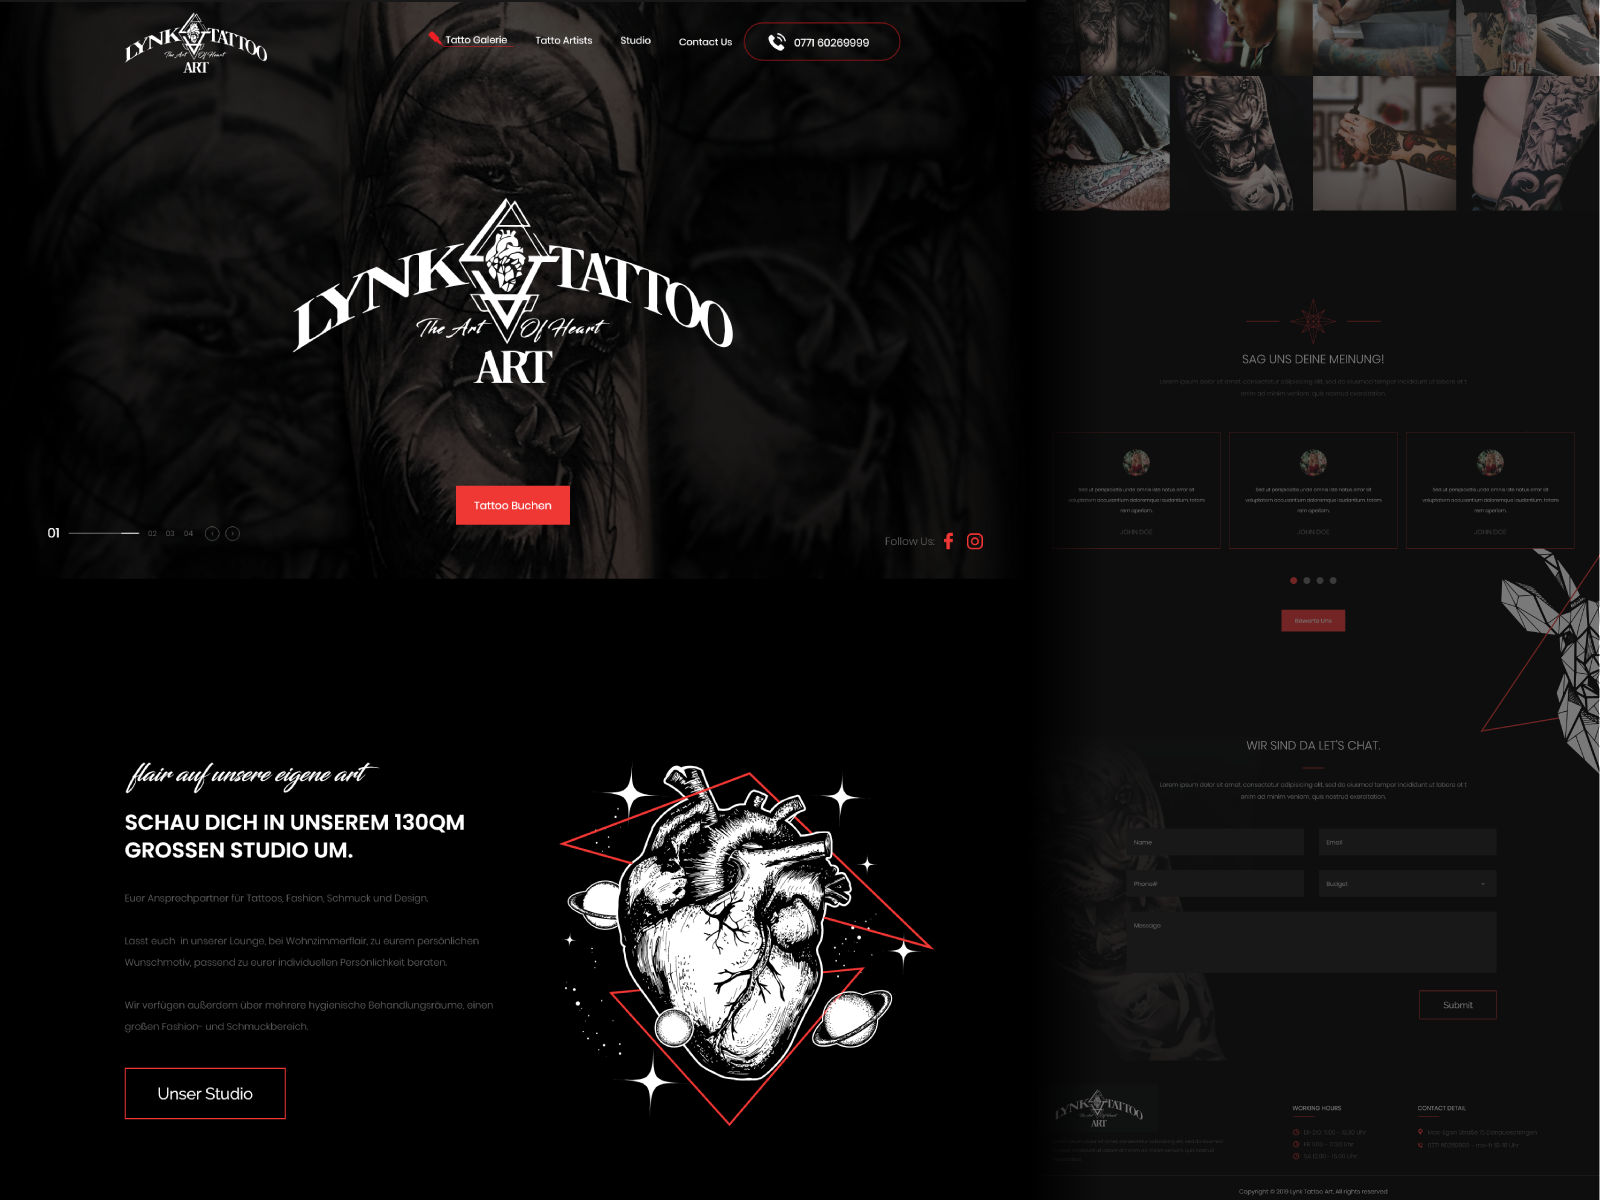 Lynk Tattoo Art Website By Inkyy Com Graphic Design Services Creative Web Design Web Design